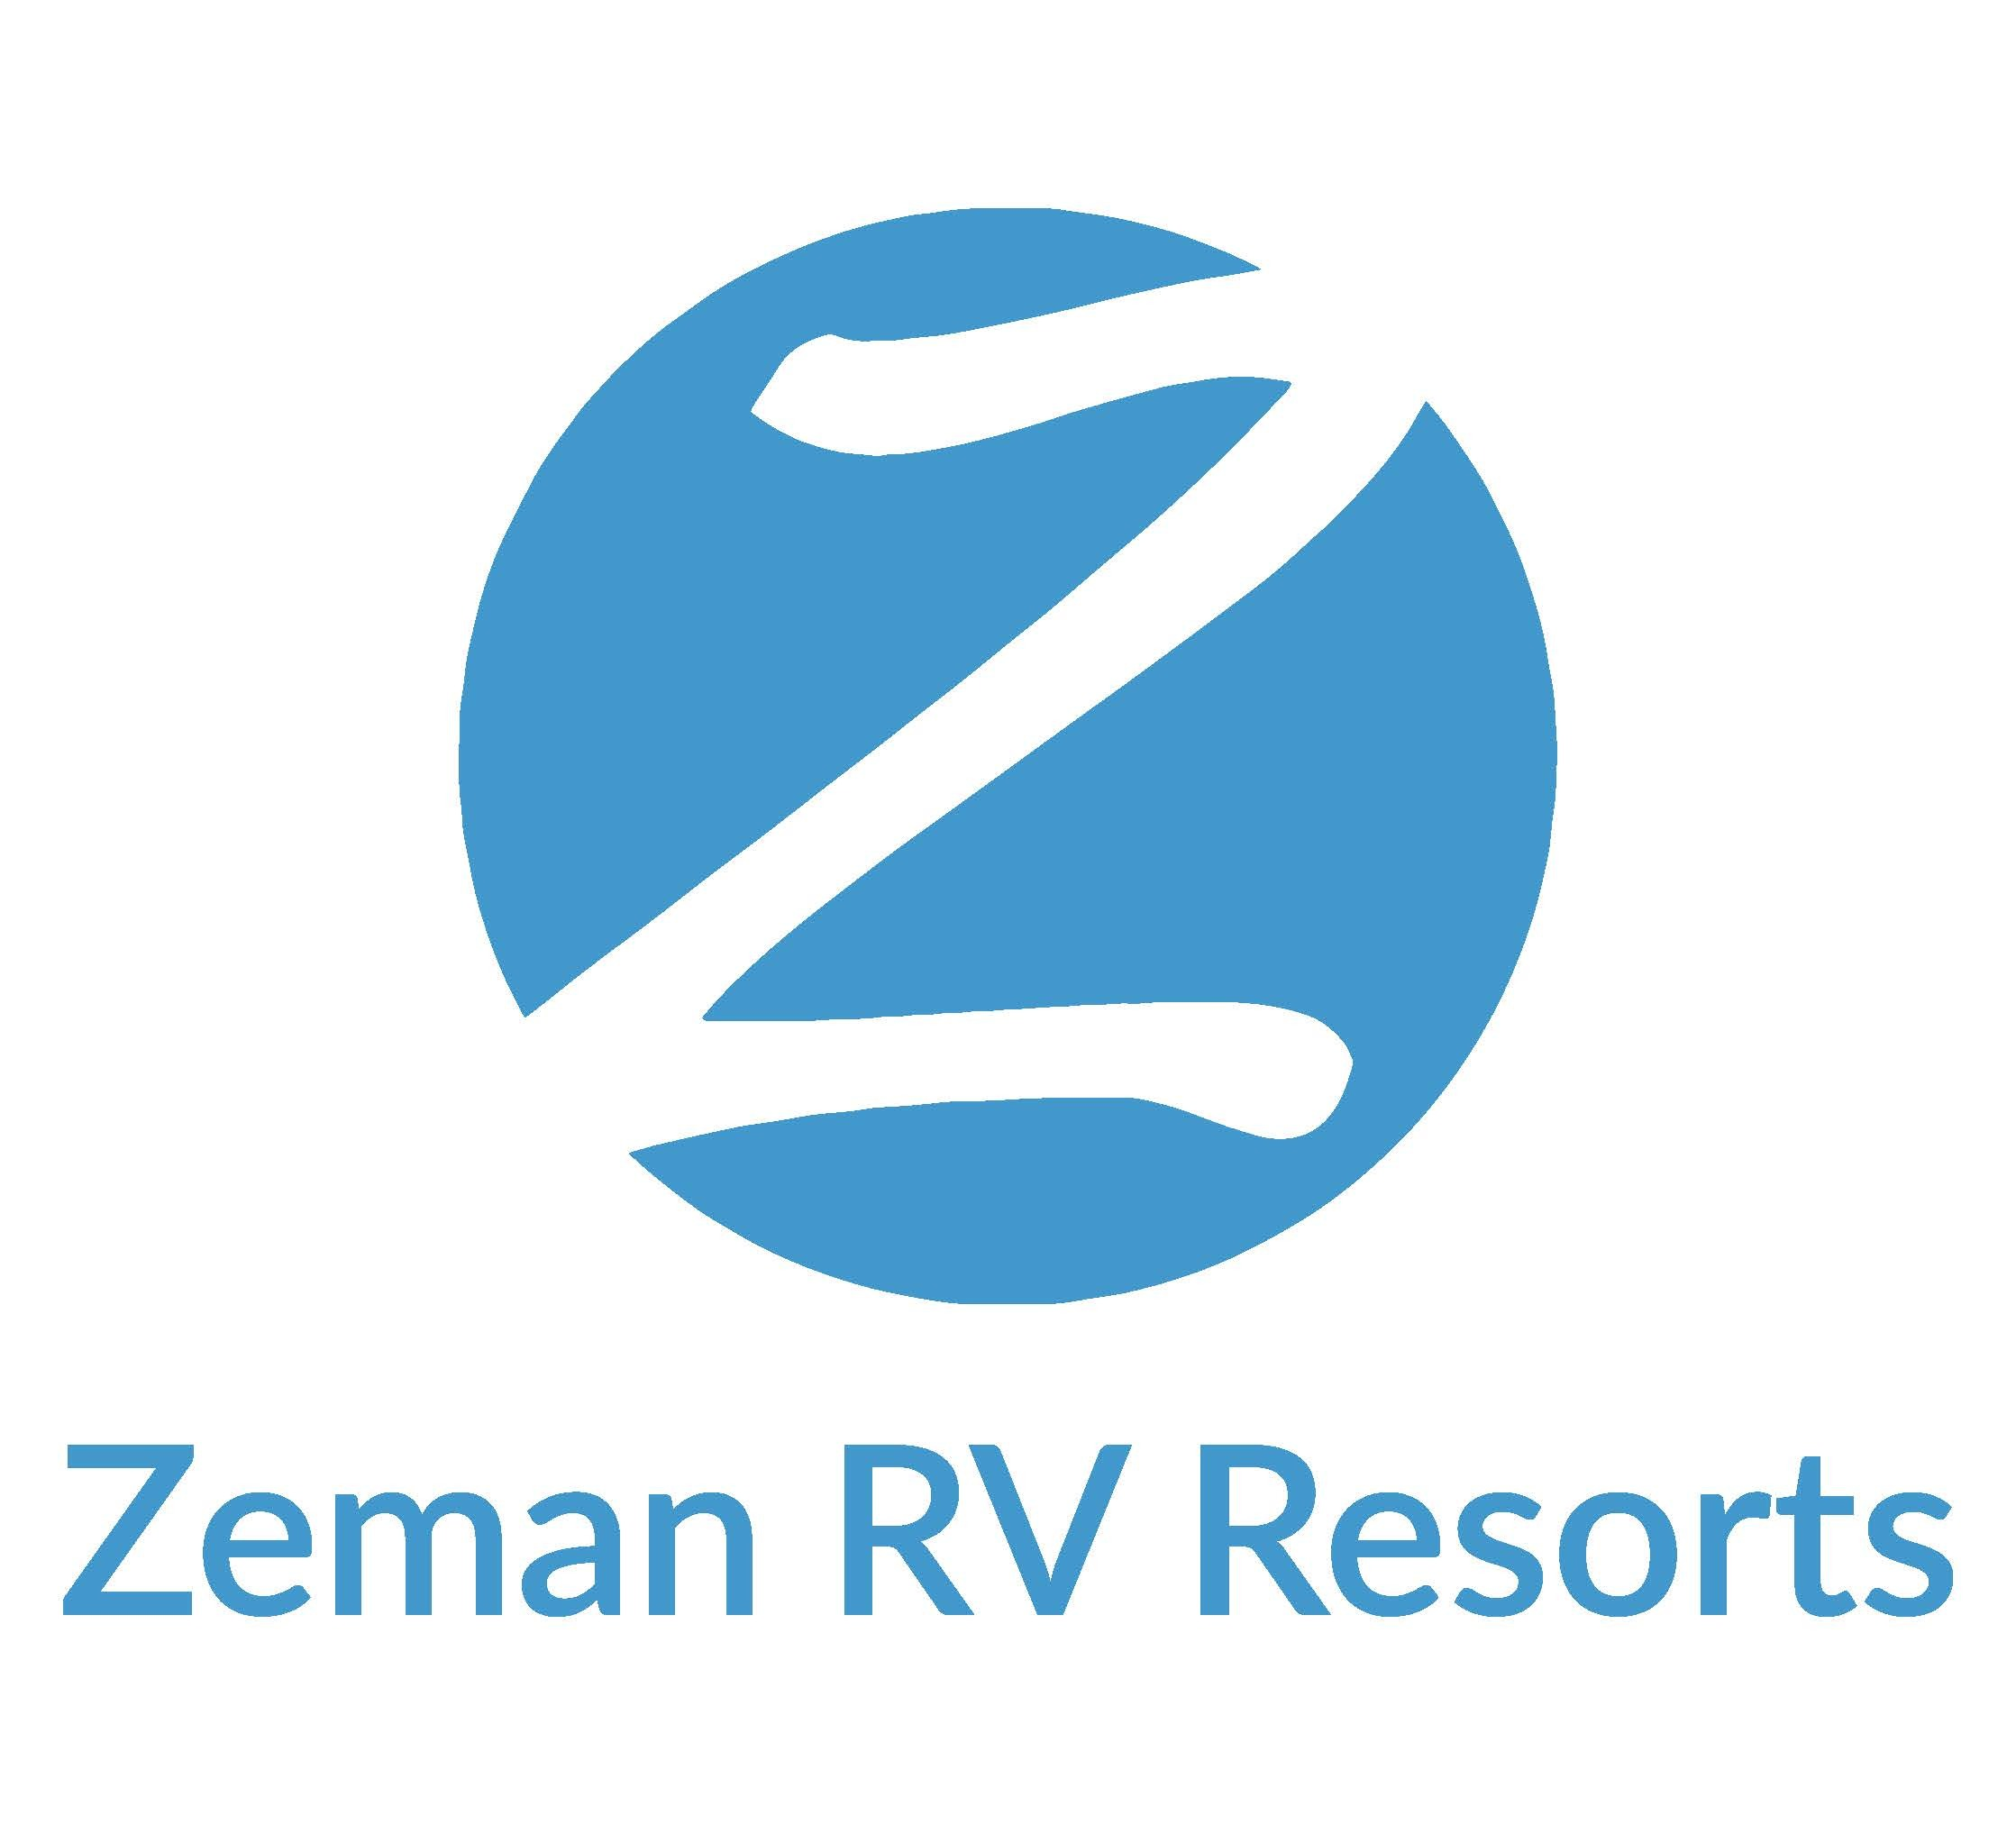 Zeman RV Resorts